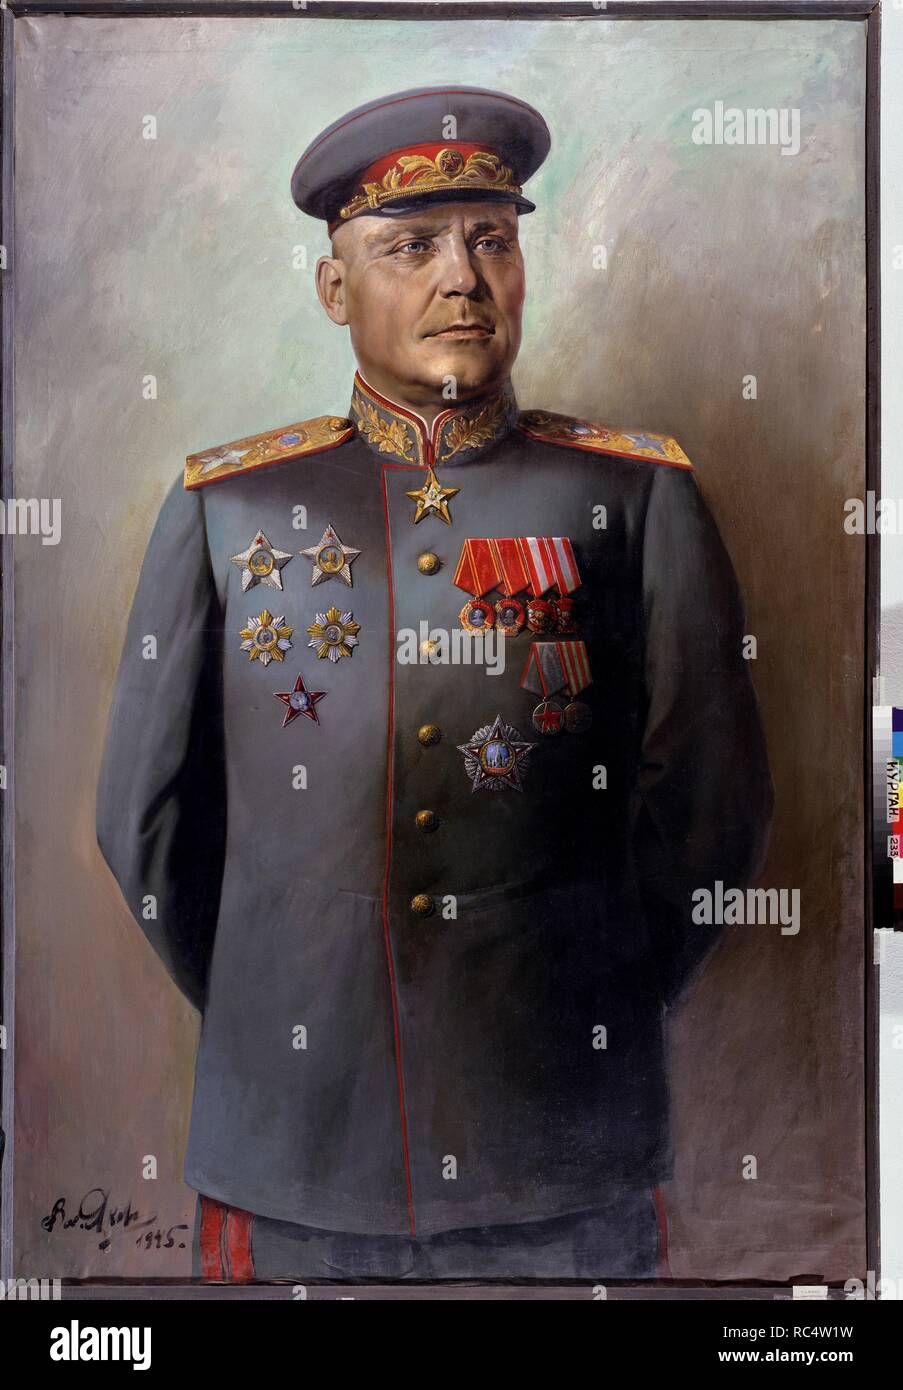 Portrait of the Marshal of Soviet Union Ivan Konev (1897-1973). Museum: Regional Art Museum, Kurgan. Author: Yakovlev, Vasili Nikolayevich. Copyright: This artwork is not in public domain. It is your responsibility to obtain all necessary third party permissions from the copyright handler in your country prior to publication. - Stock Image